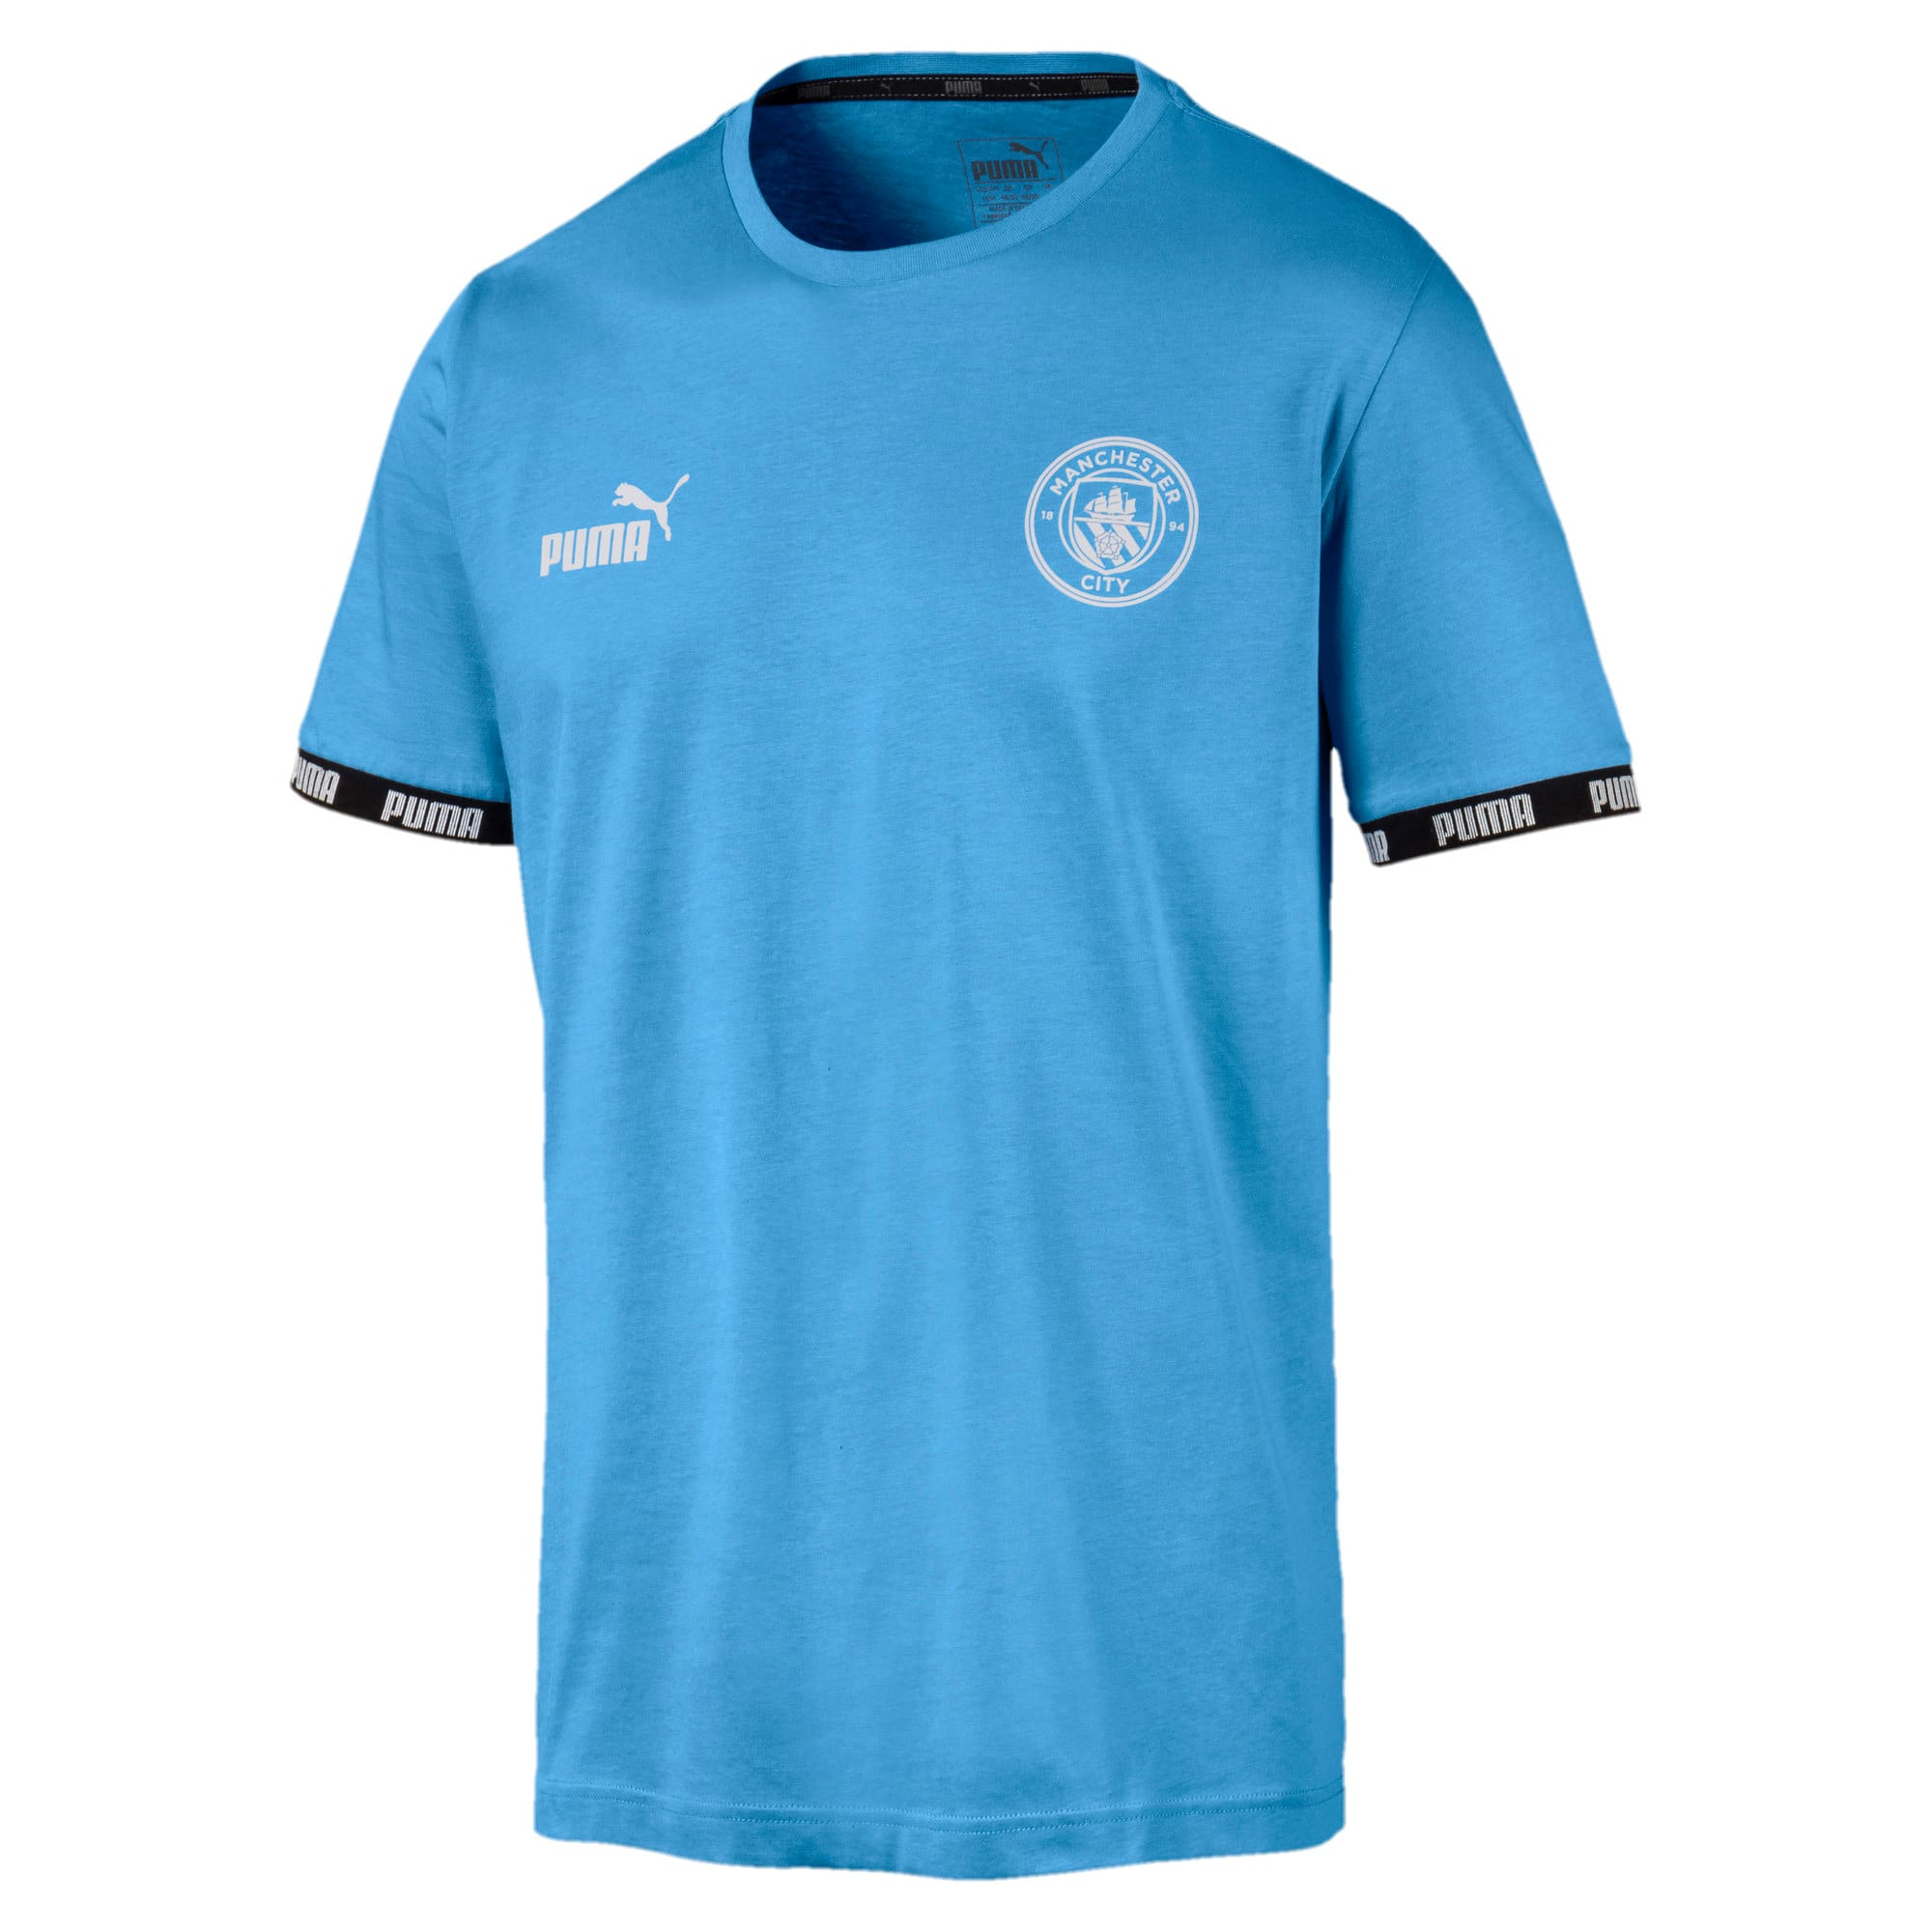 Anteprima 1 di Man City Men's Football Culture Tee, Team Light Blue, medio